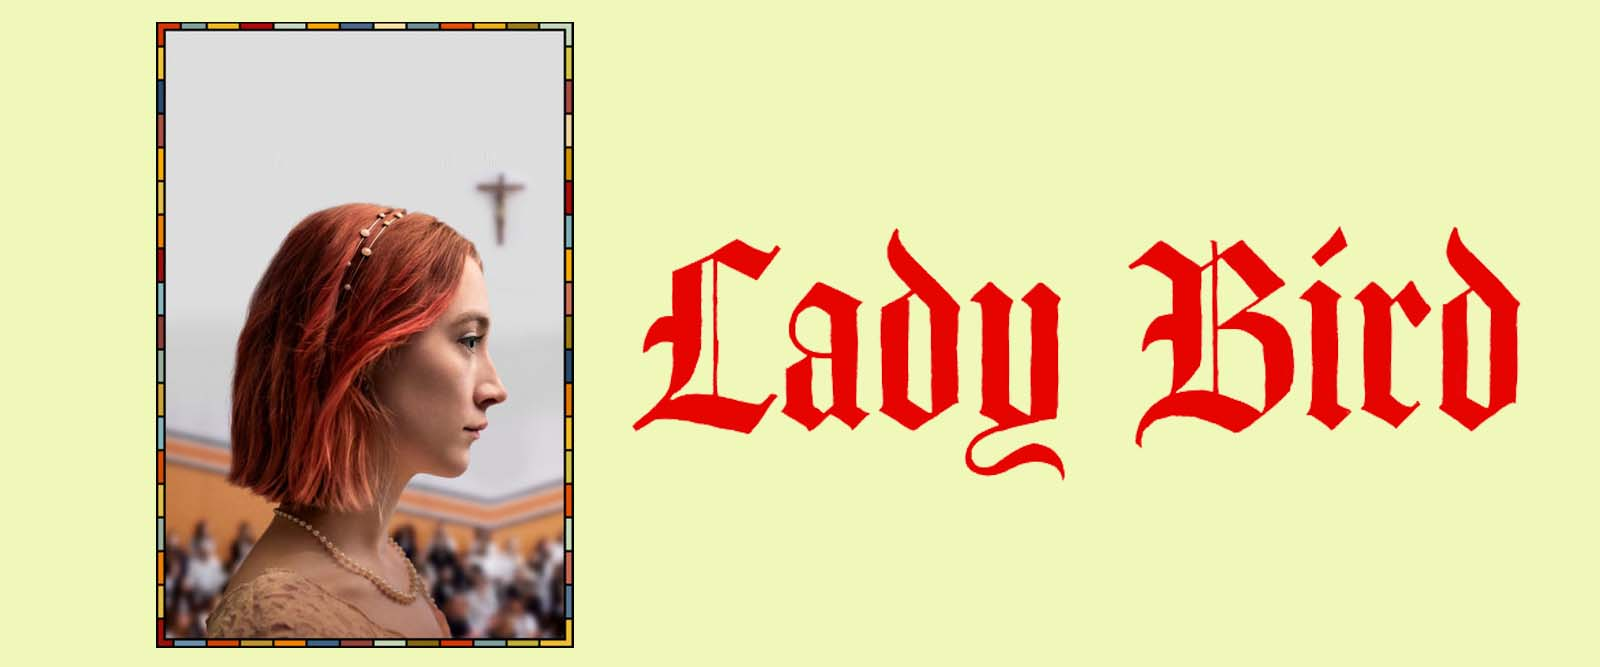 Lady Bird movies of 2017